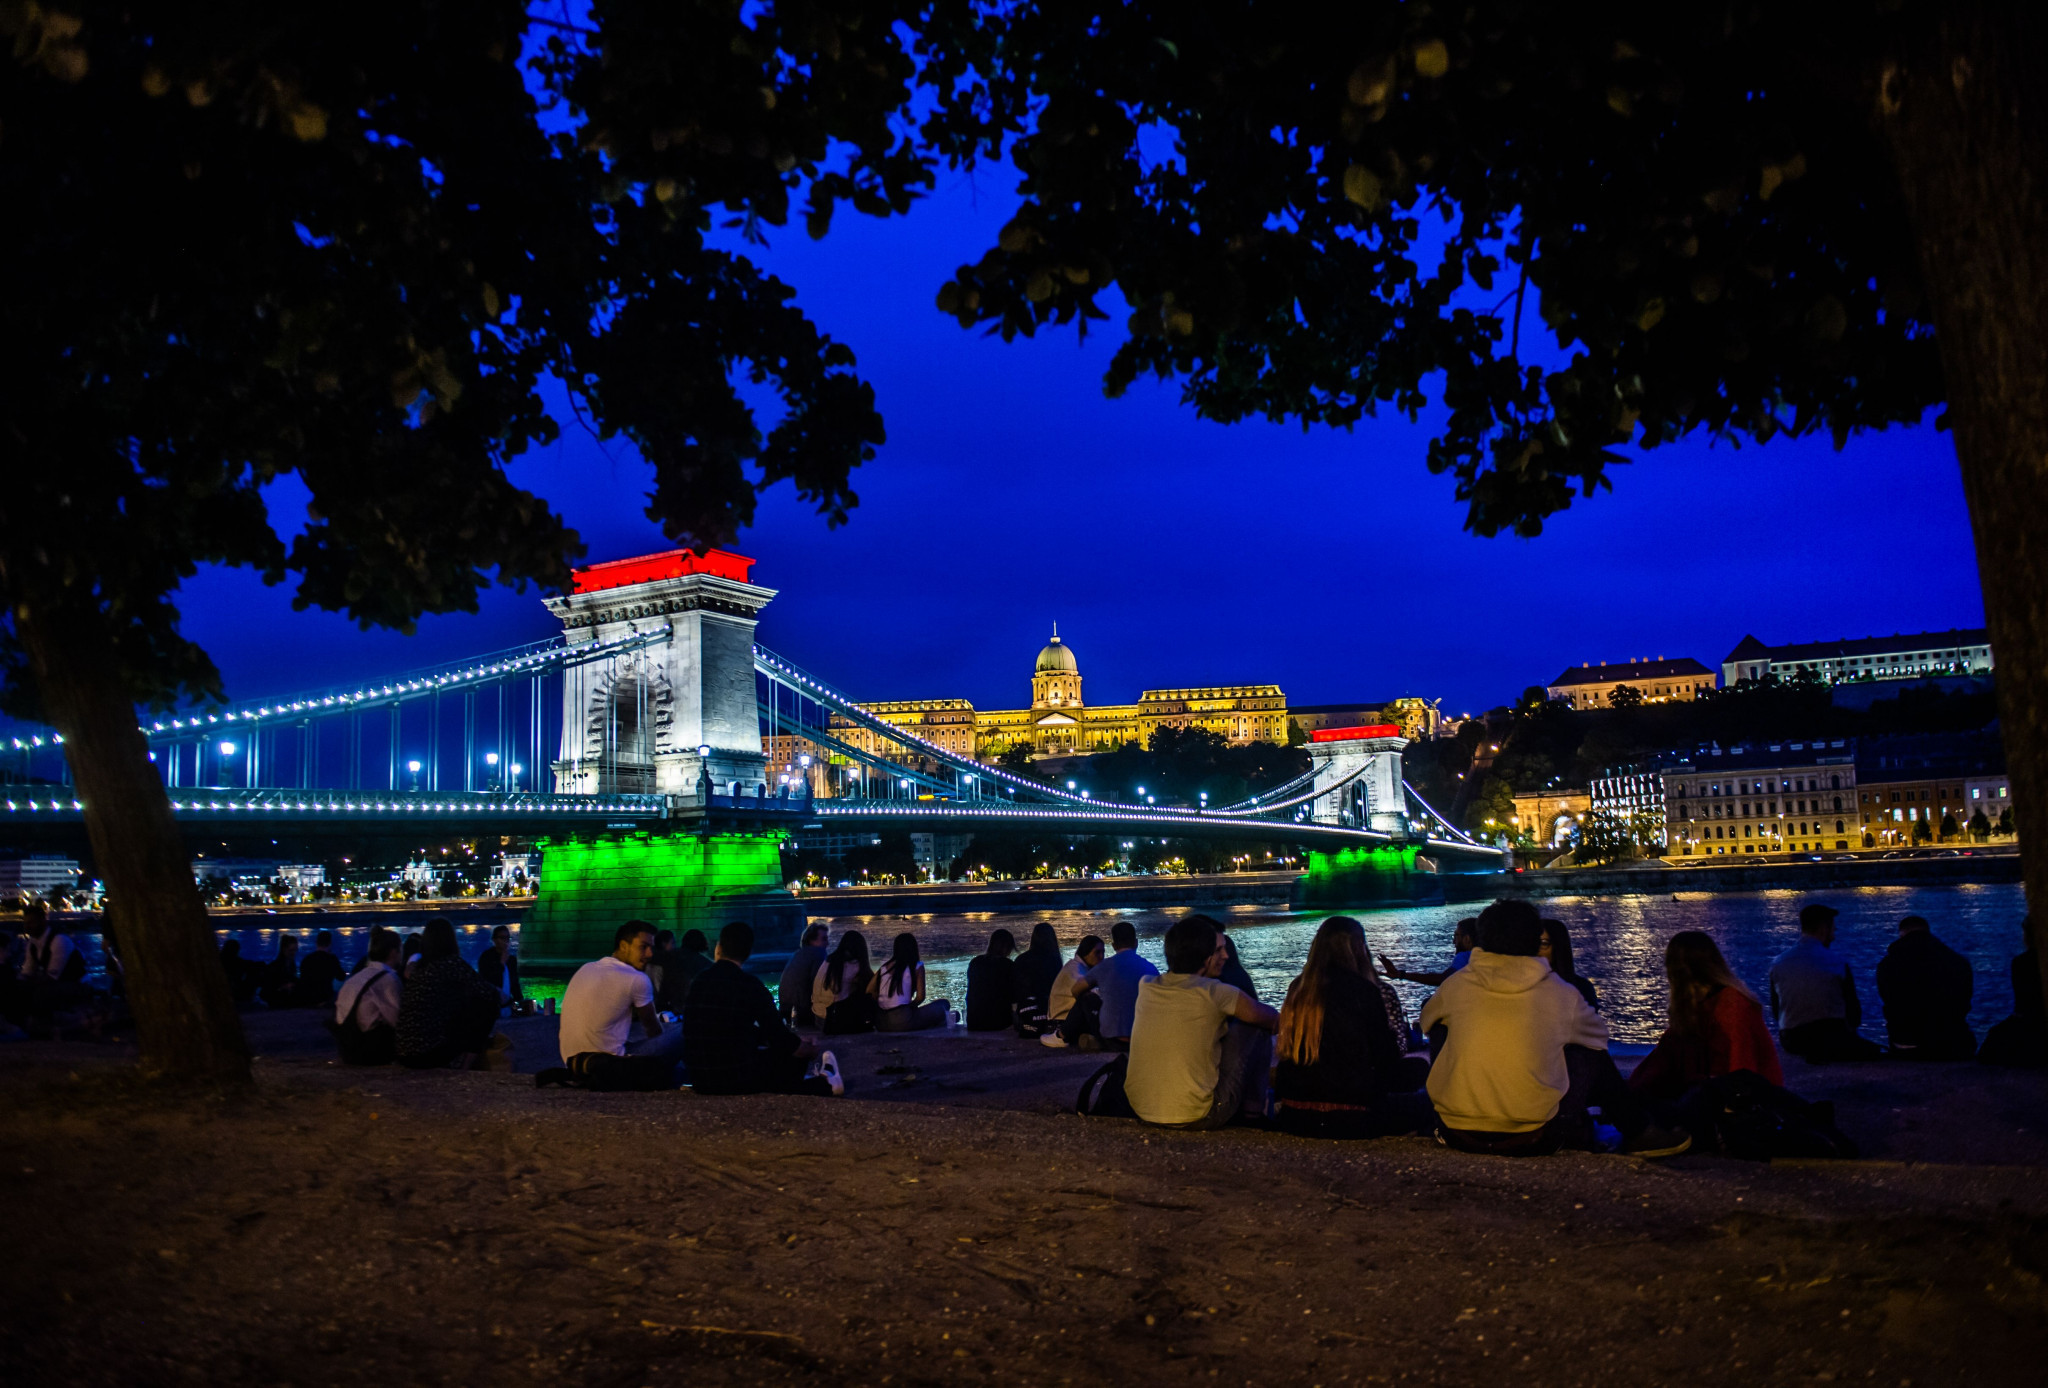 Budapest 2032 Committee to continue to study feasibility of Olympic bid